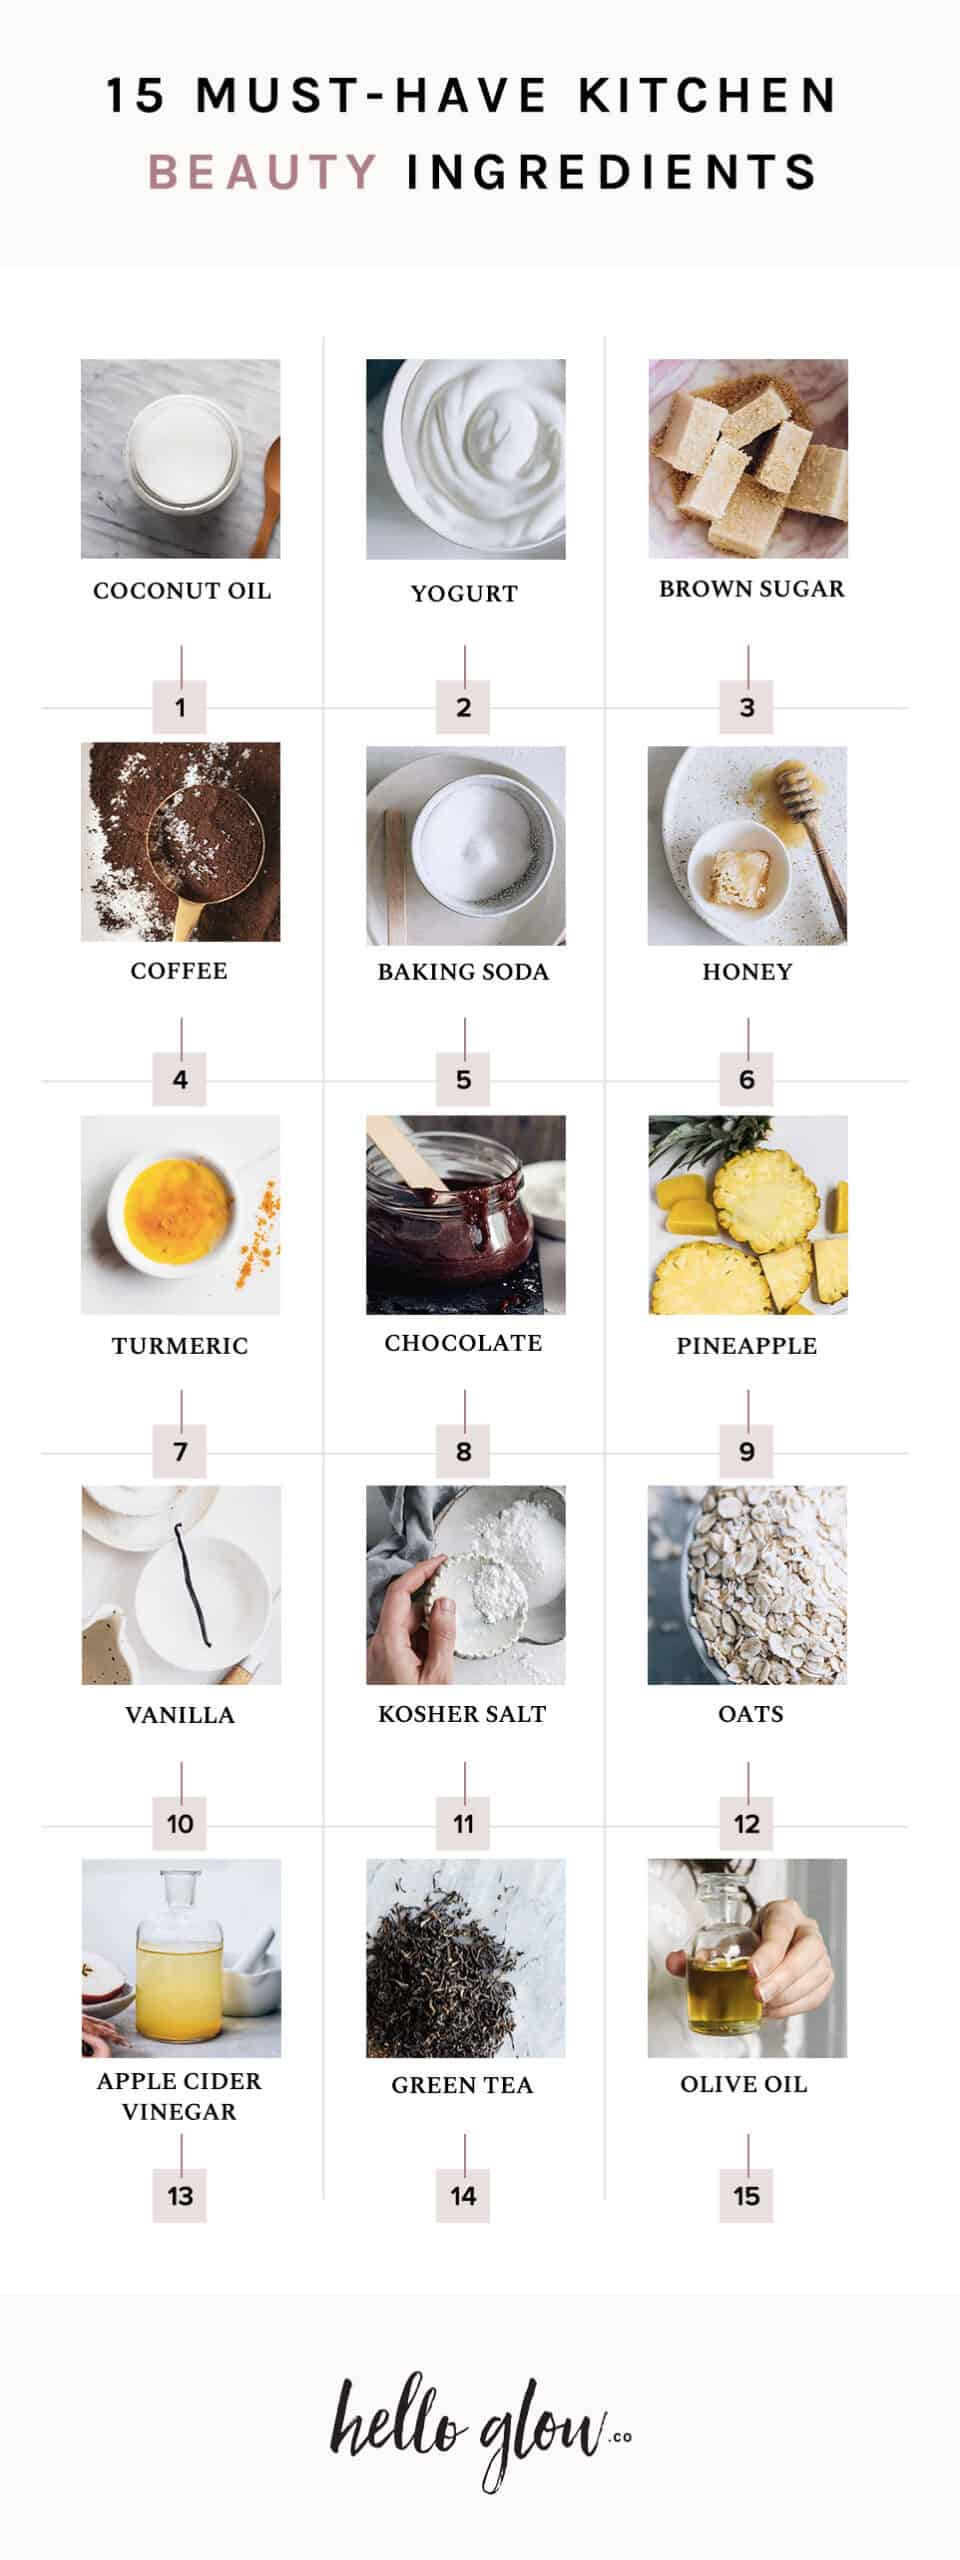 15 must-have kitchen beauty ingredients - HelloGlow.co